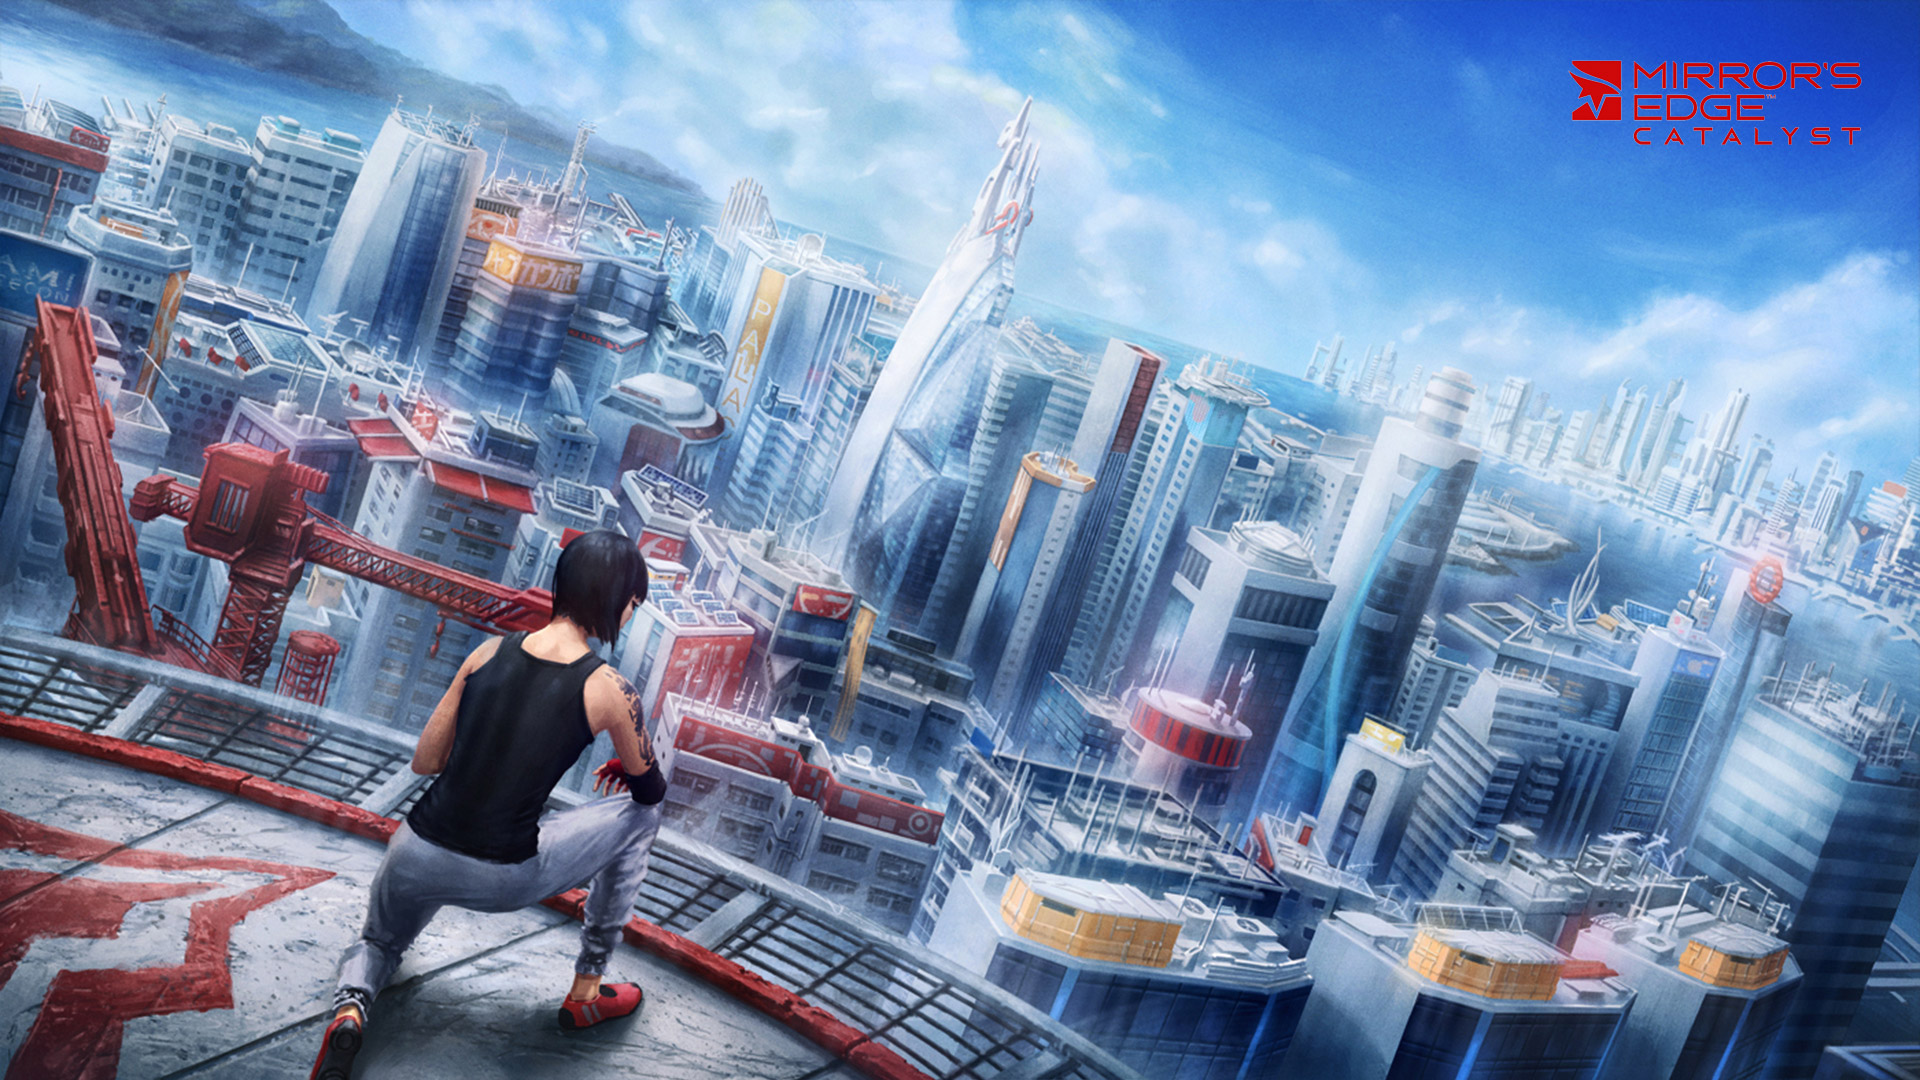 Mirror's Edge Catalyst Wallpaper in 1920x1080